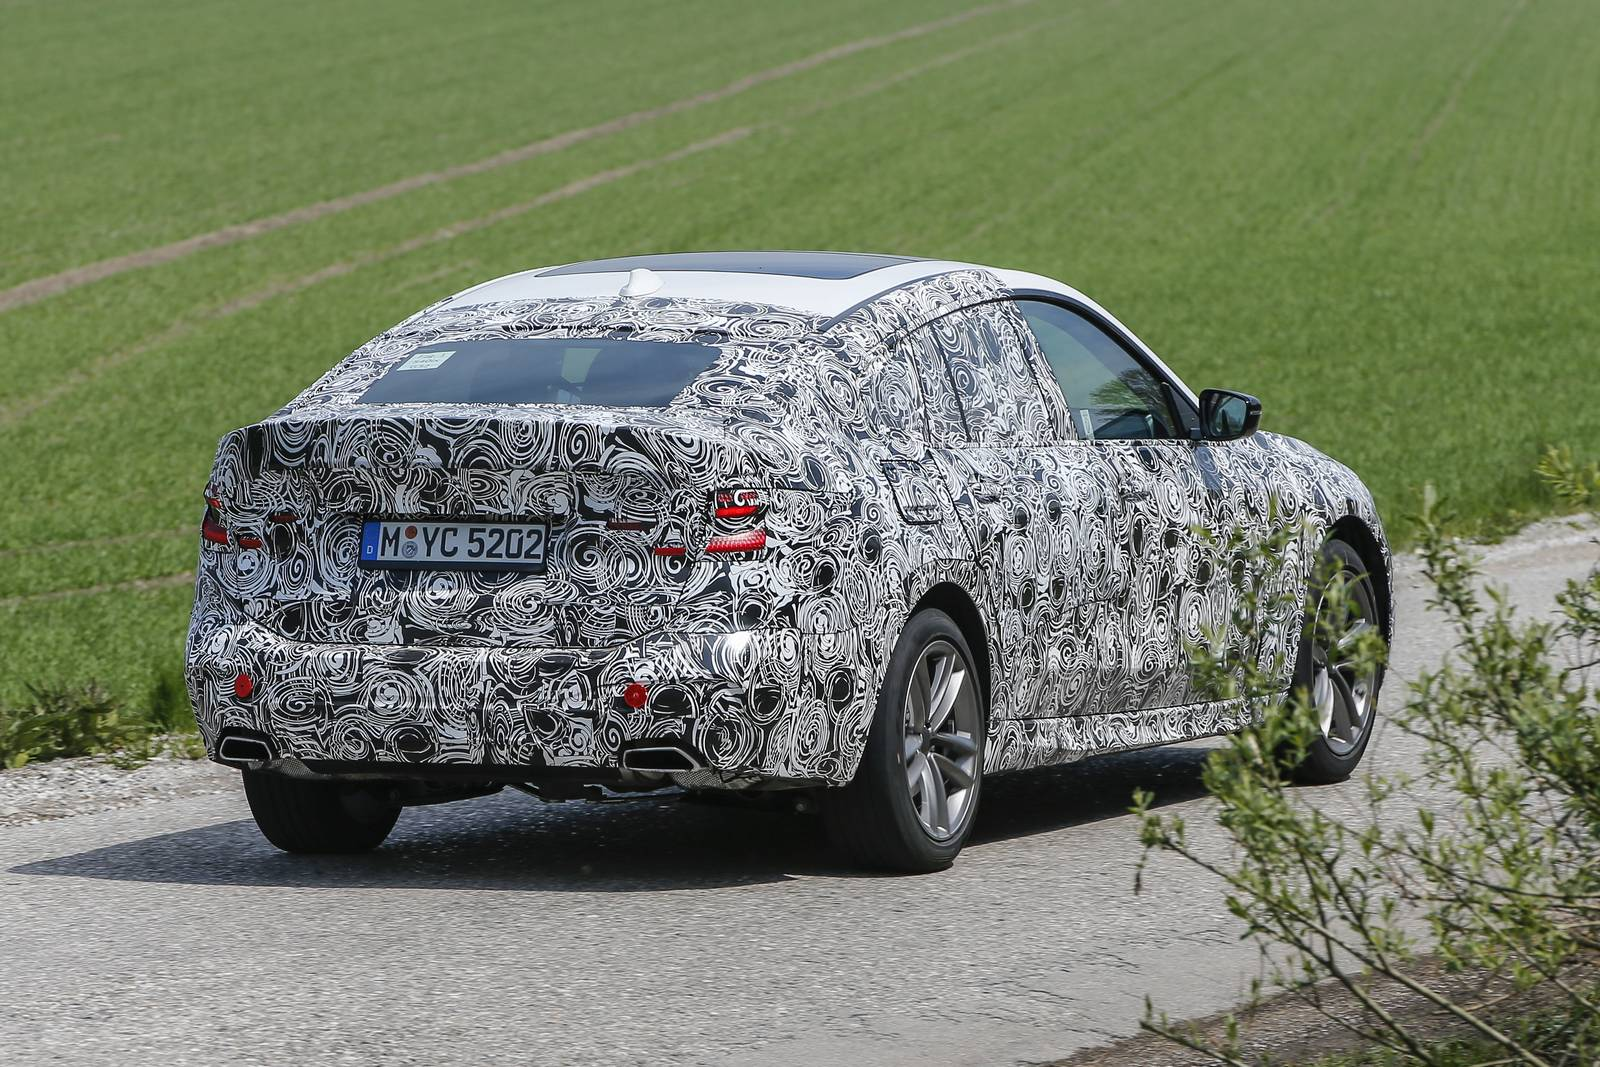 NextGen BMW 5 Series Spy Shots  M5 GT Sedan and Estate  GTspirit